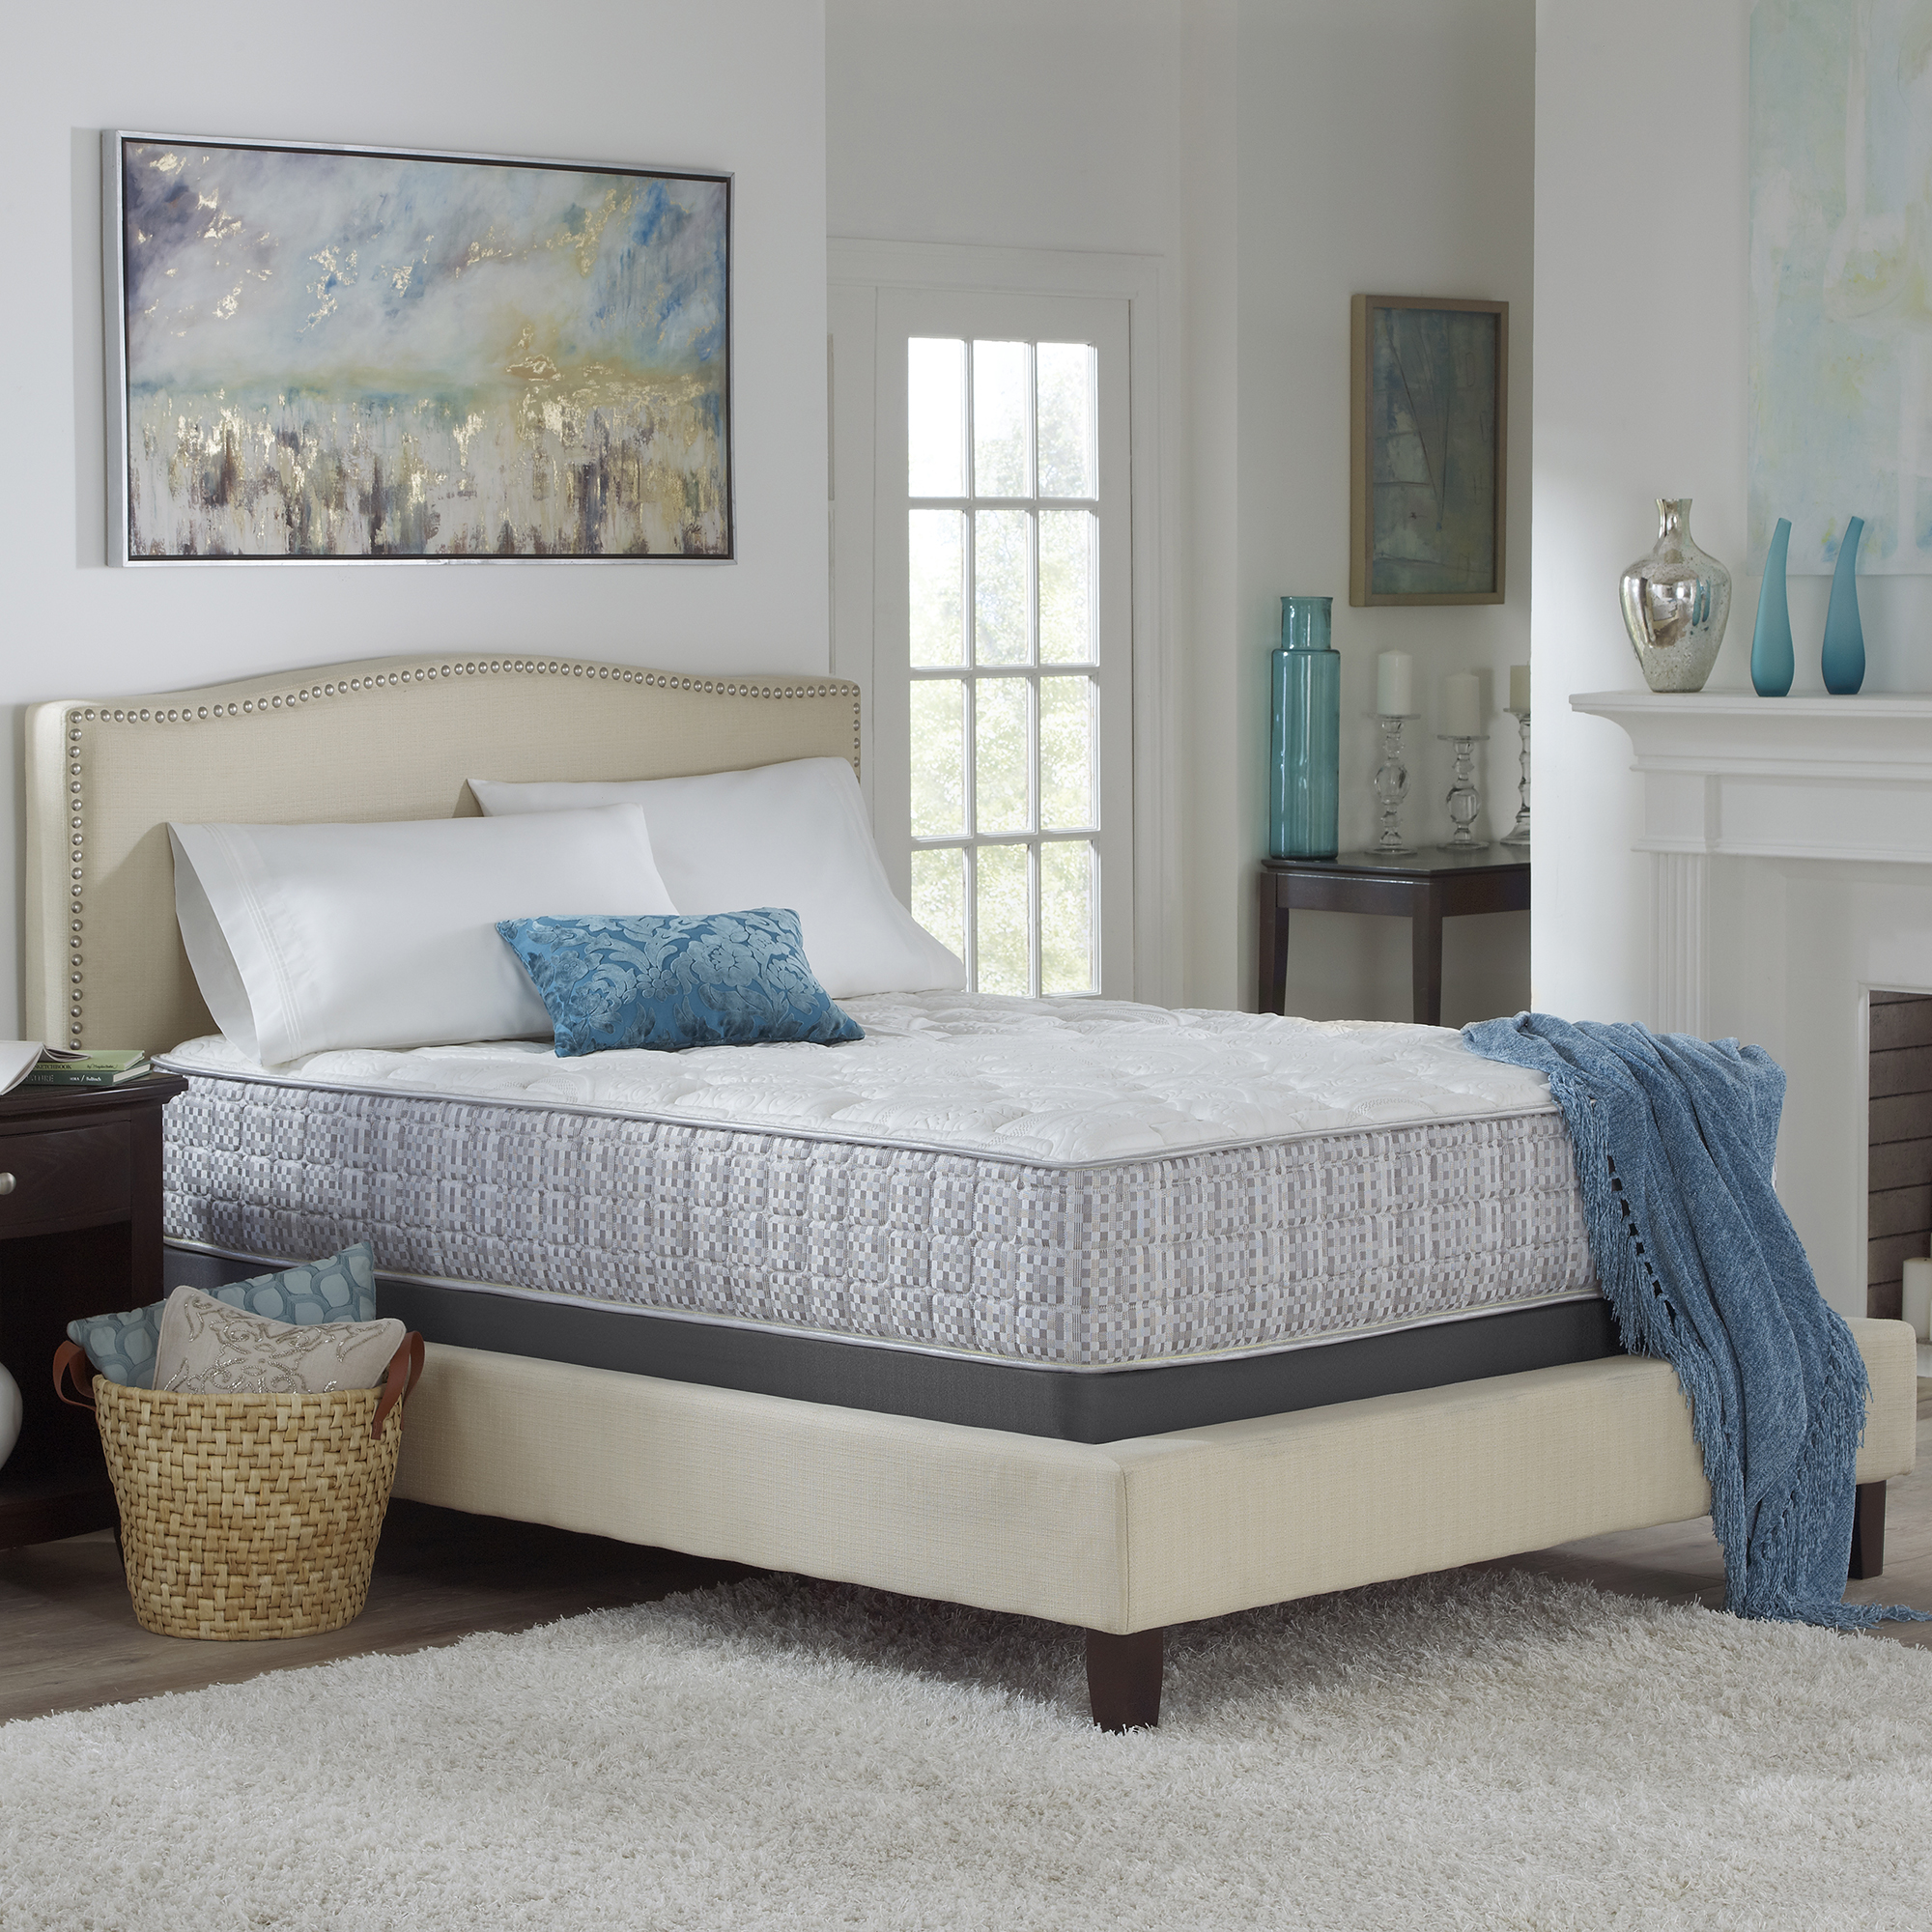 """Homestead Collection 13"""" PlatinumRest Firm Mattress with Advanced Lumbar Support, Multiple Sizes by Corsicana Mattress"""